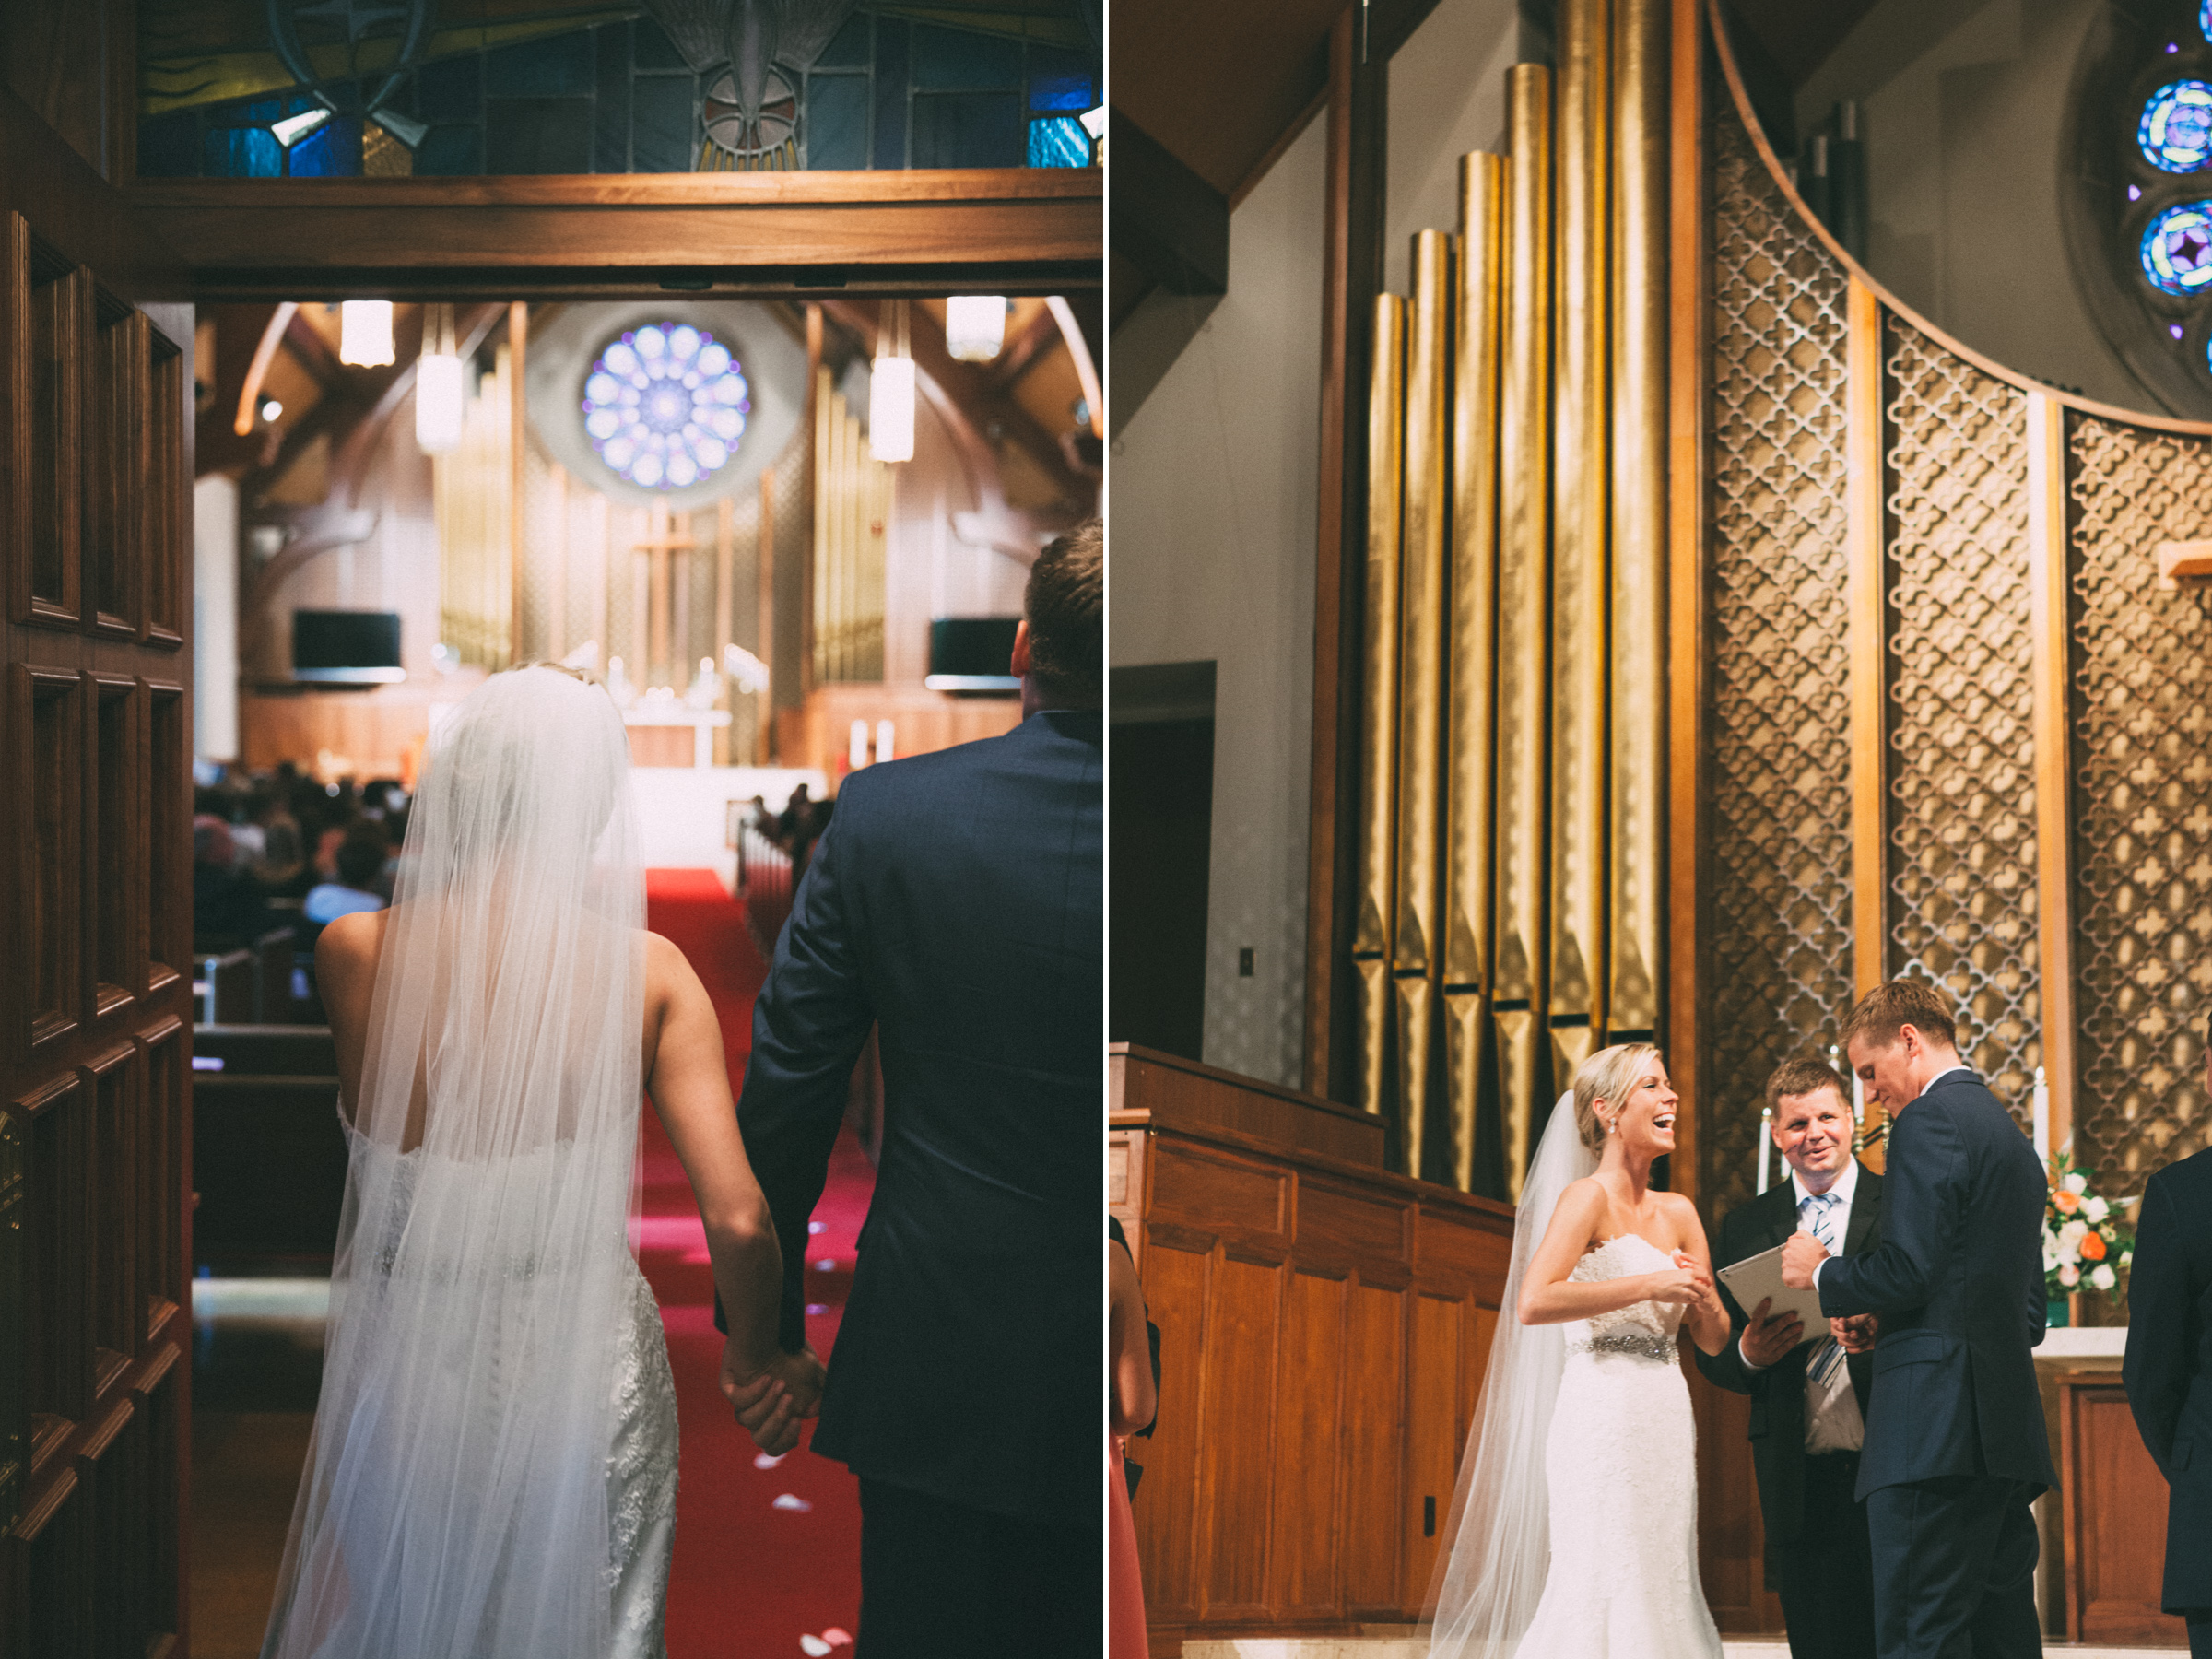 Bride and groom at their wedding ceremony